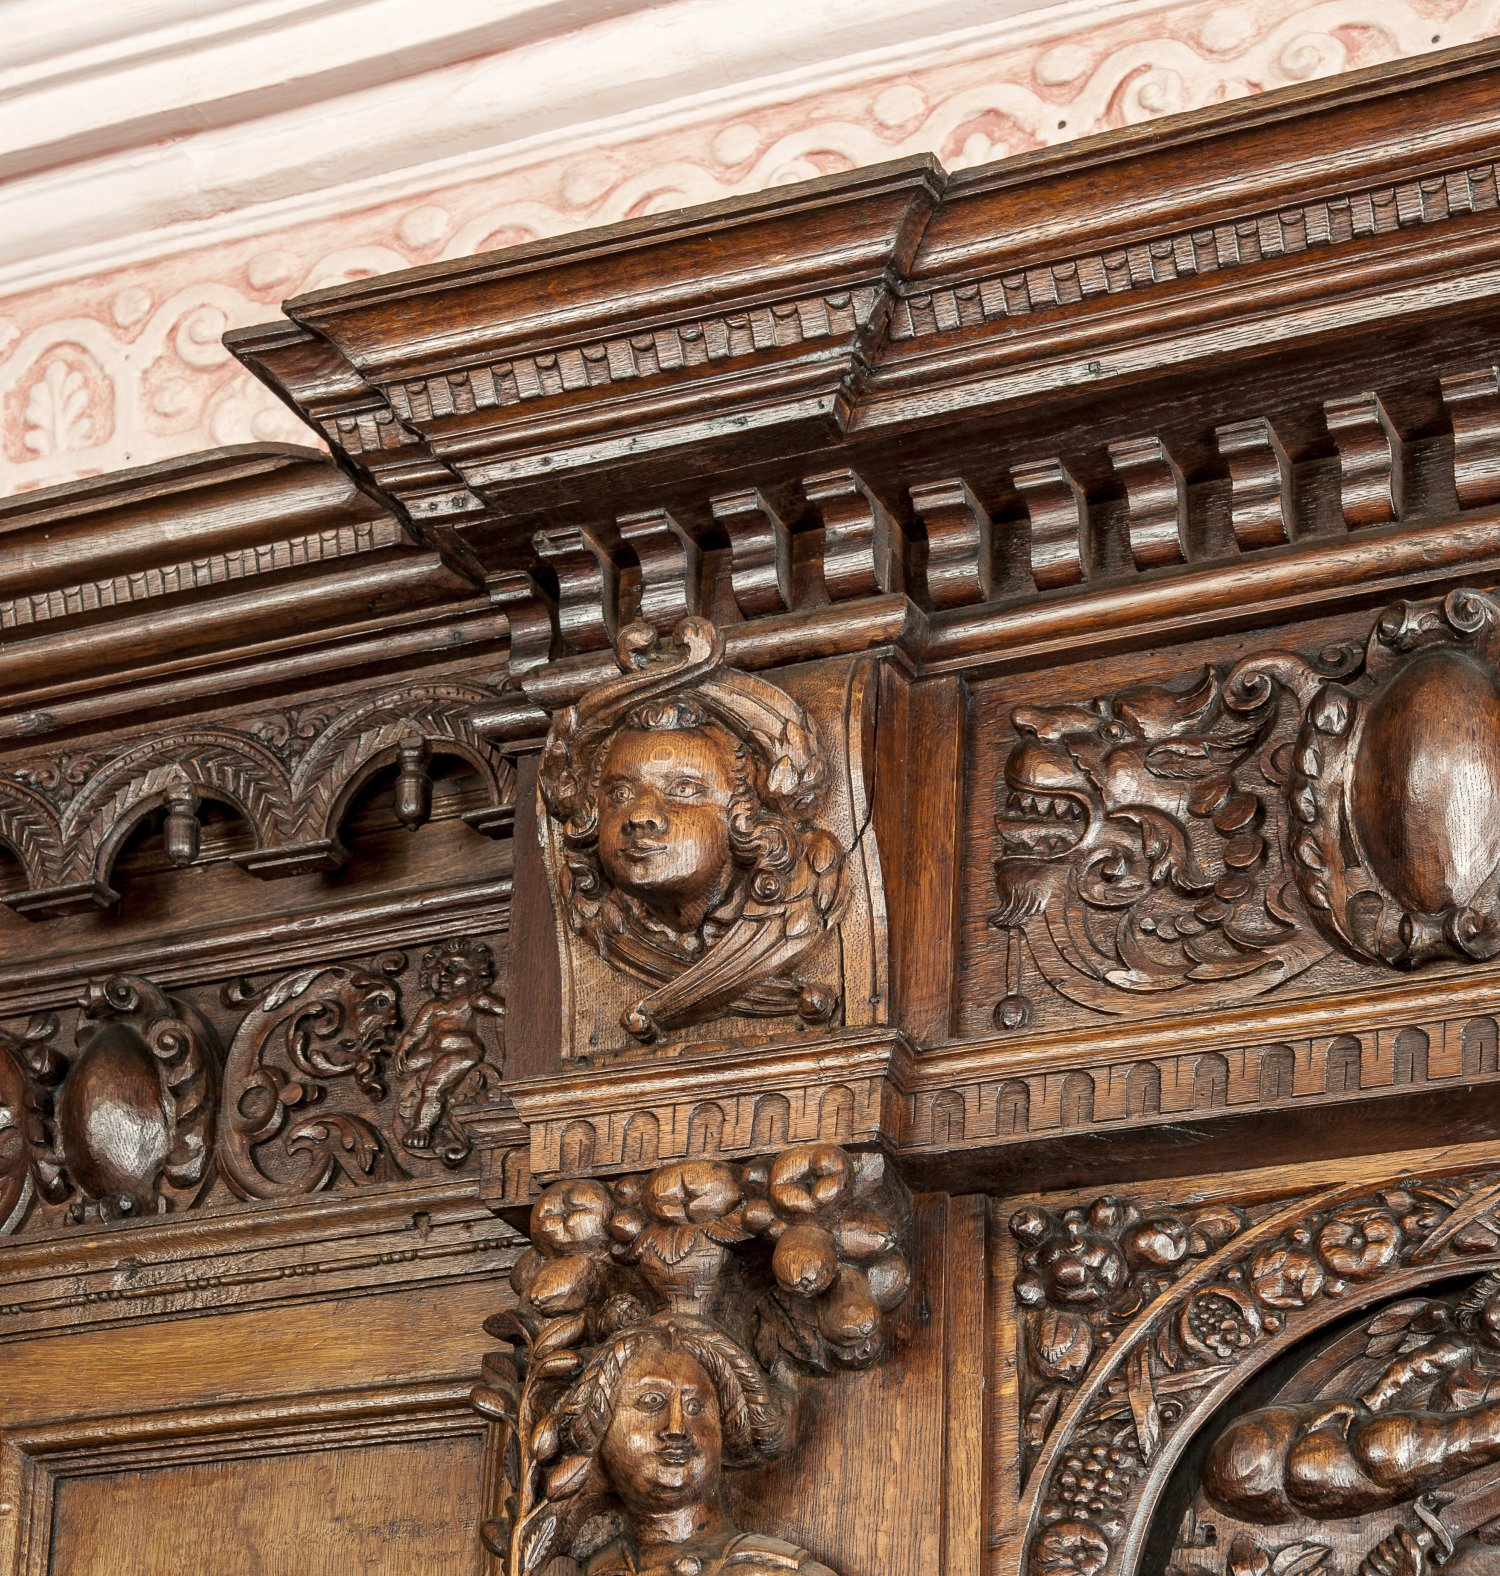 Restoration of the magnificent original late C16th oak joinery